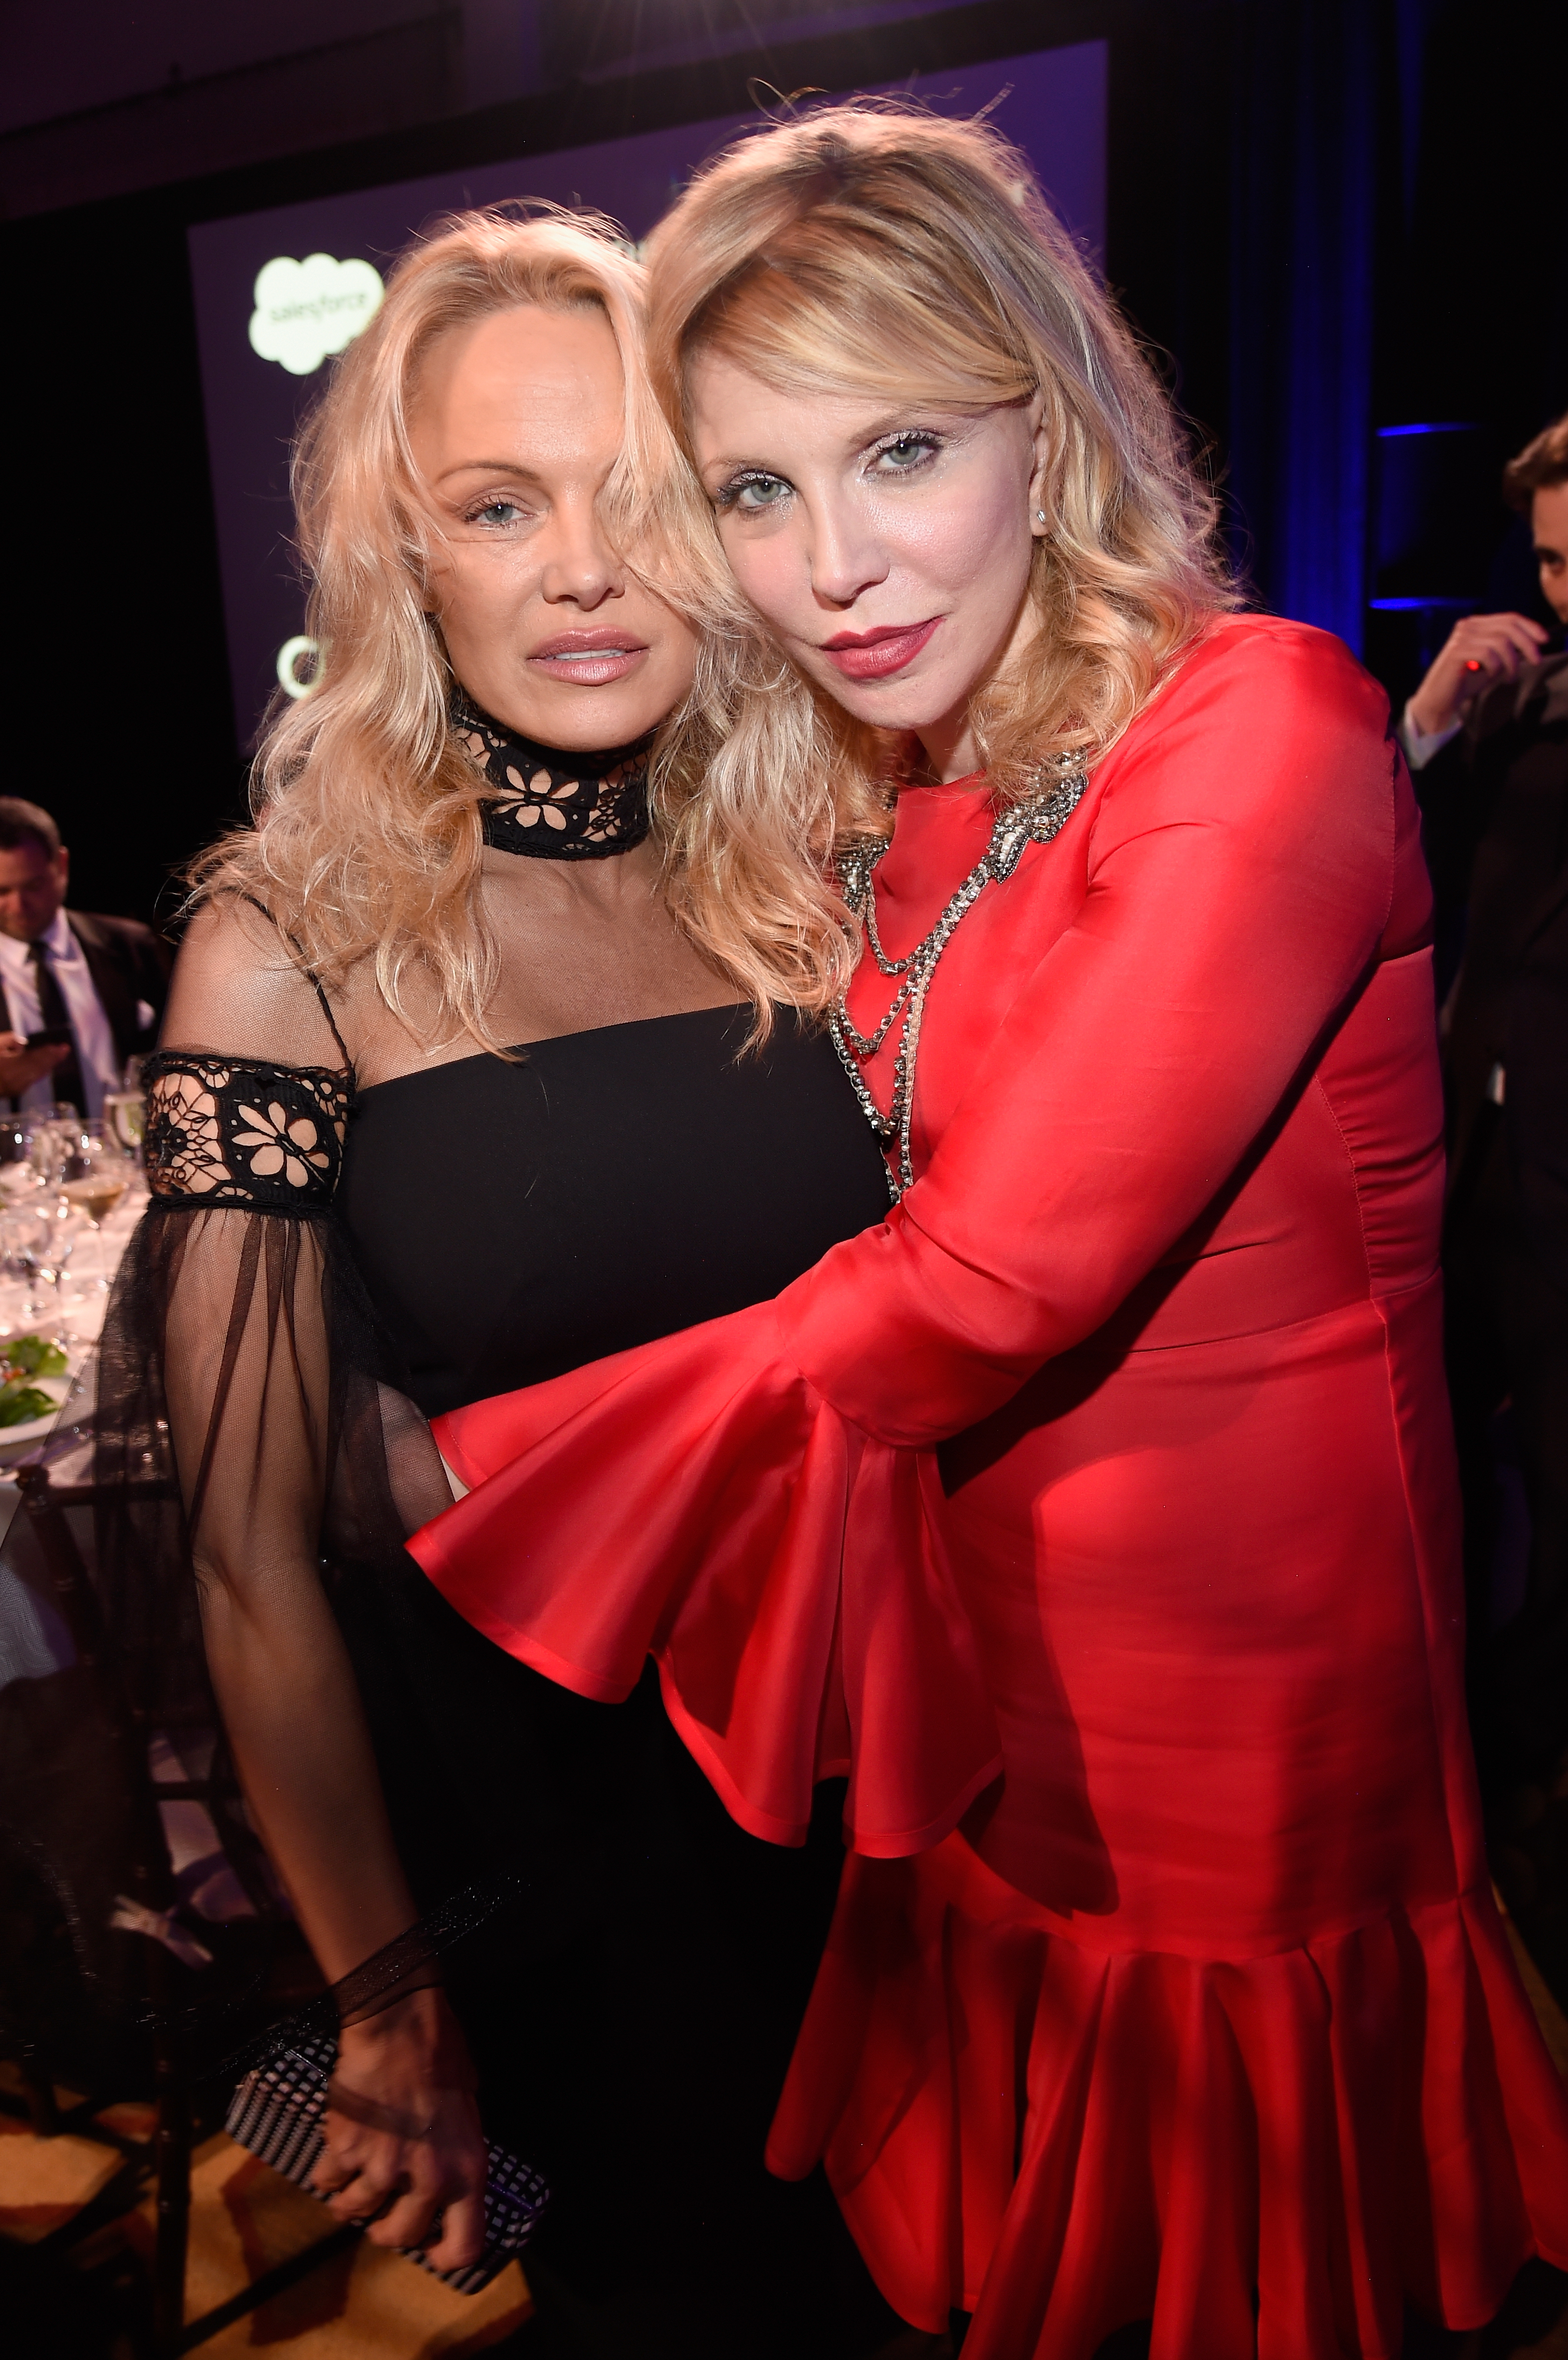 Pamela Anderson and Courtney Love attend the 6th Annual Sean Penn & Friends HAITI RISING Gala Benefiting J/P Haitian Relief Organizationat Montage Hotel on January 7, 2017 in Beverly Hills, California.